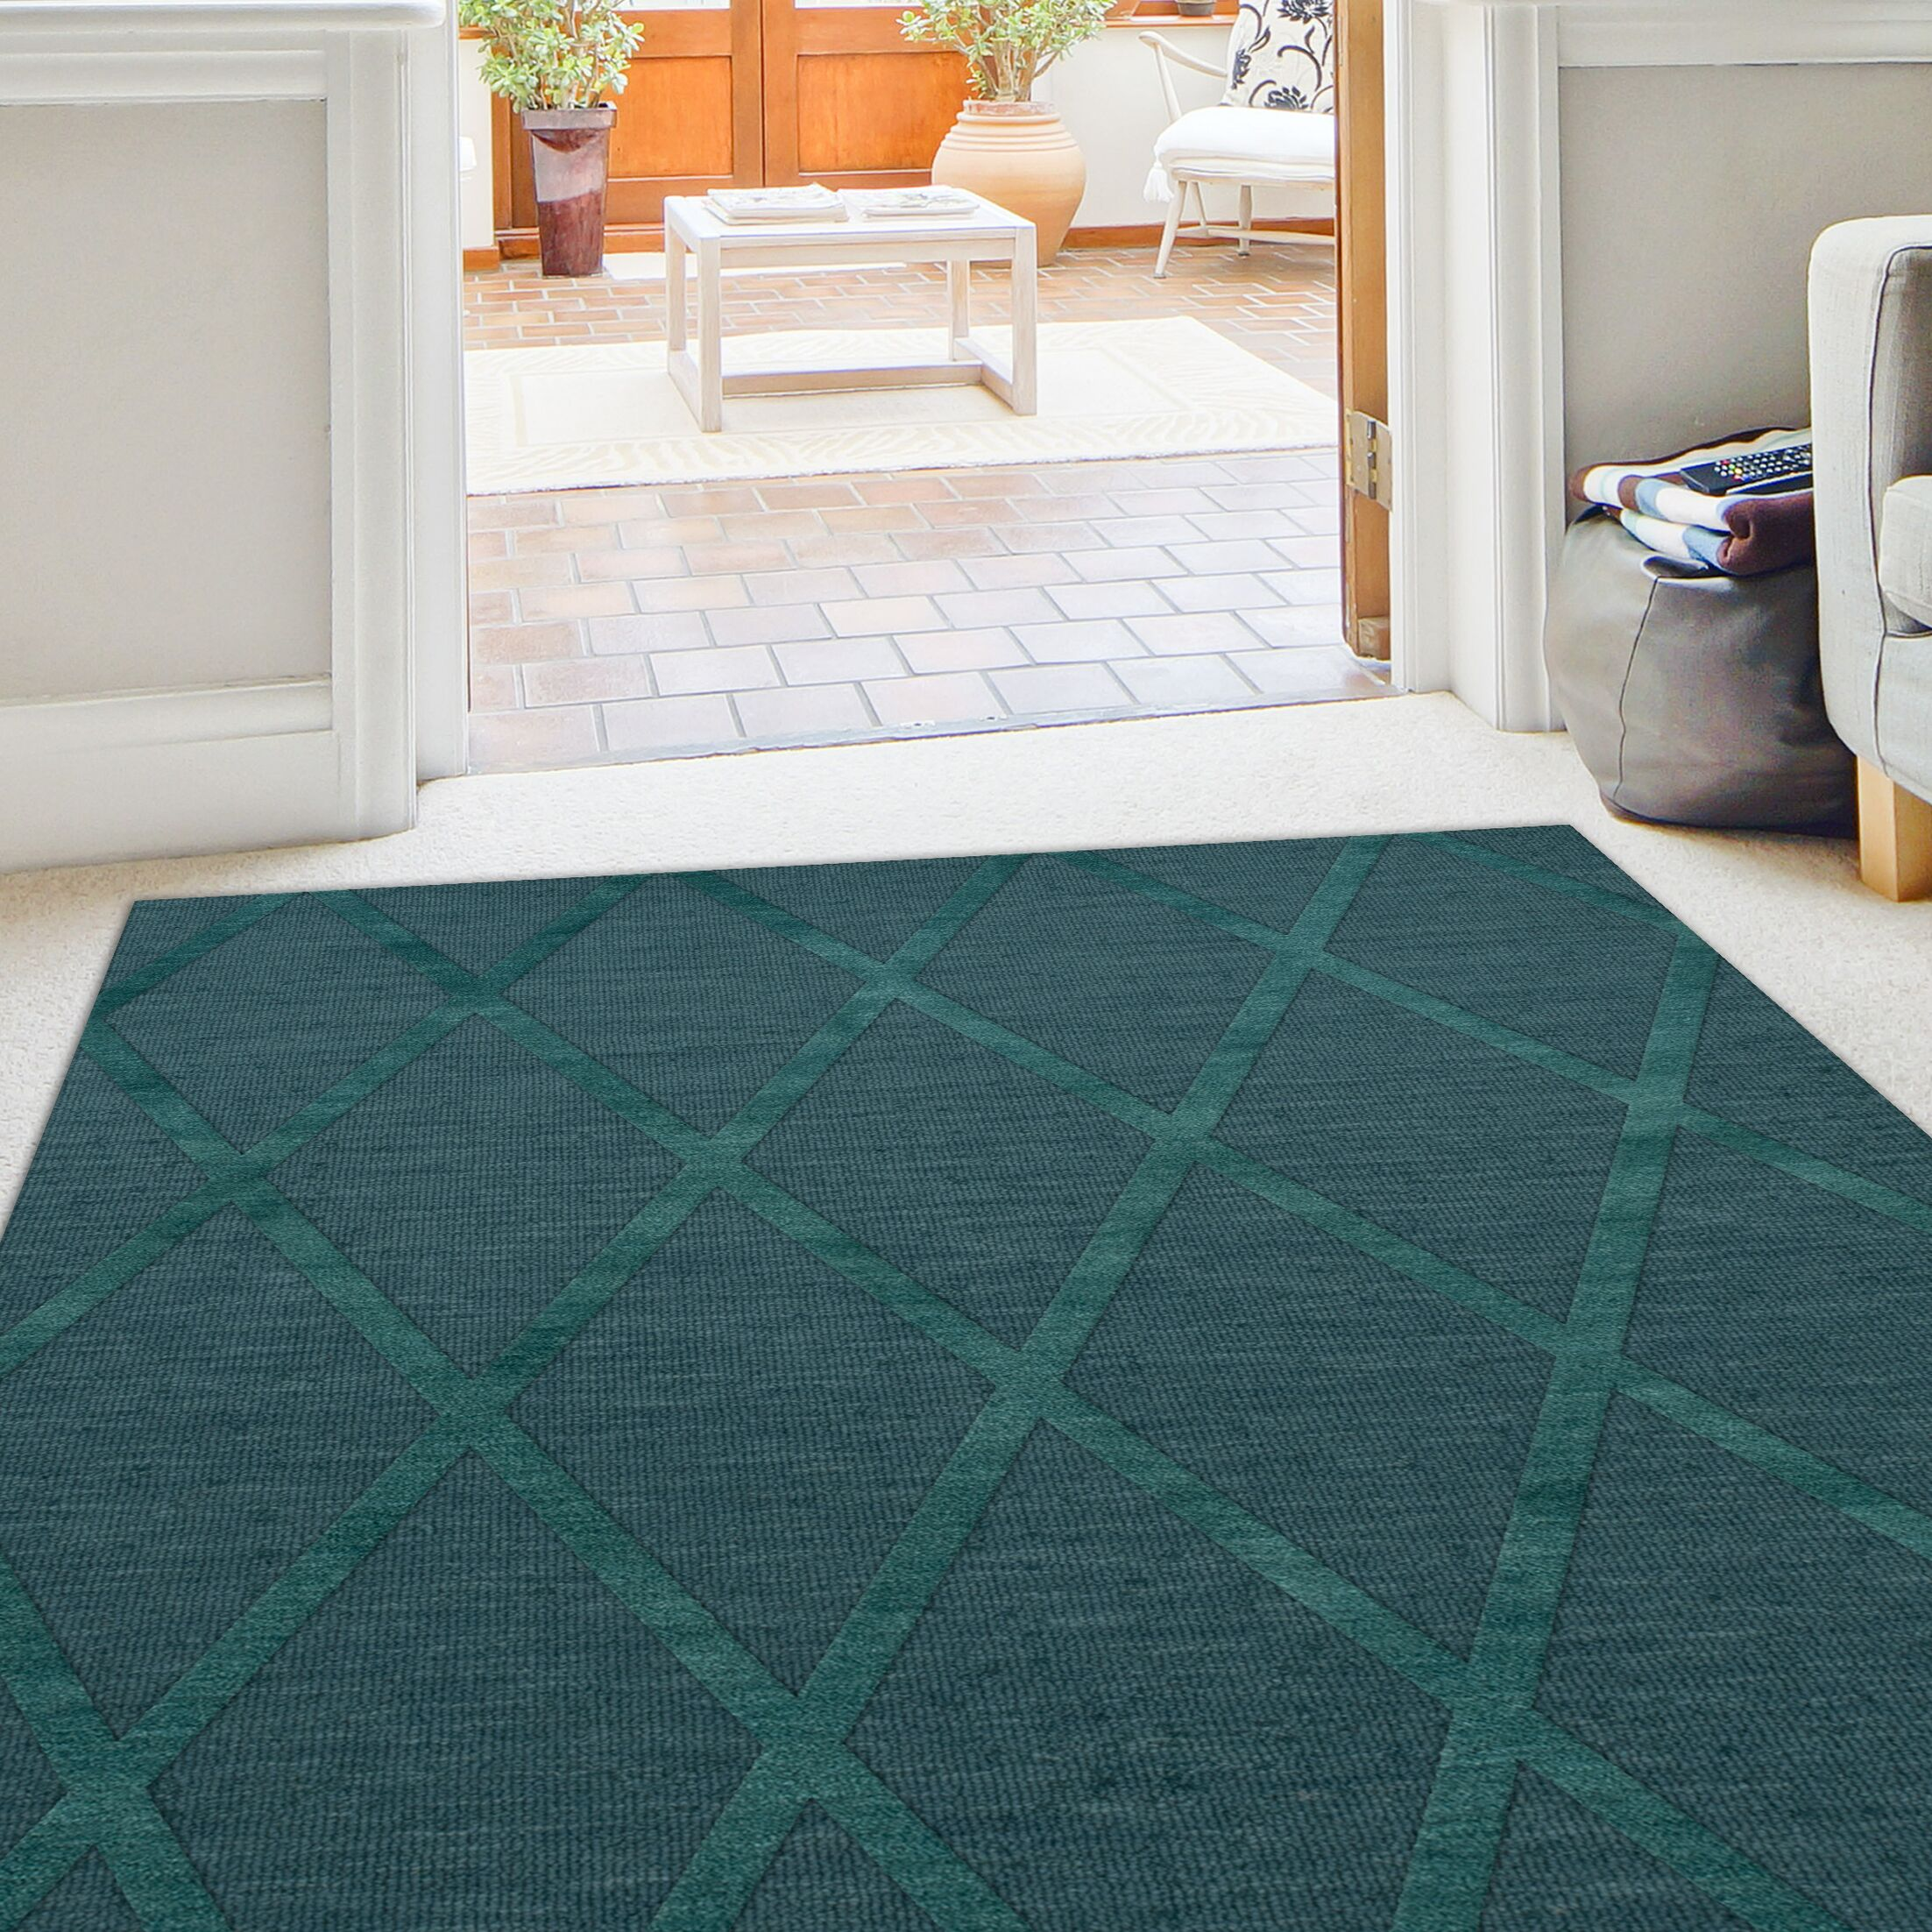 Dover Tufted Wool Teal Area Rug Rug Size: Square 8'